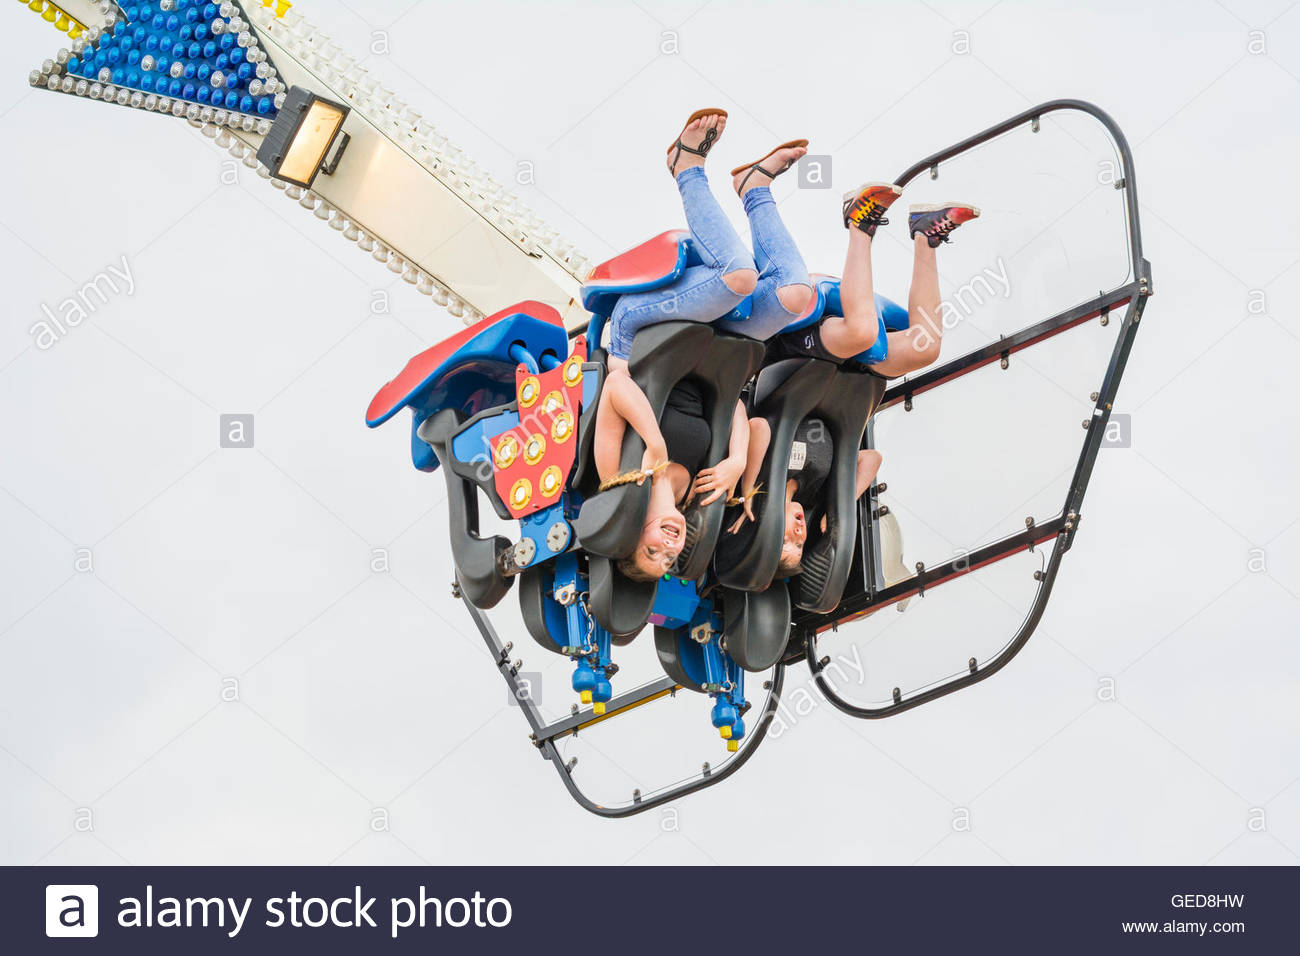 Youngsters upside-down on the Oxygen fairground ride. - Stock Image